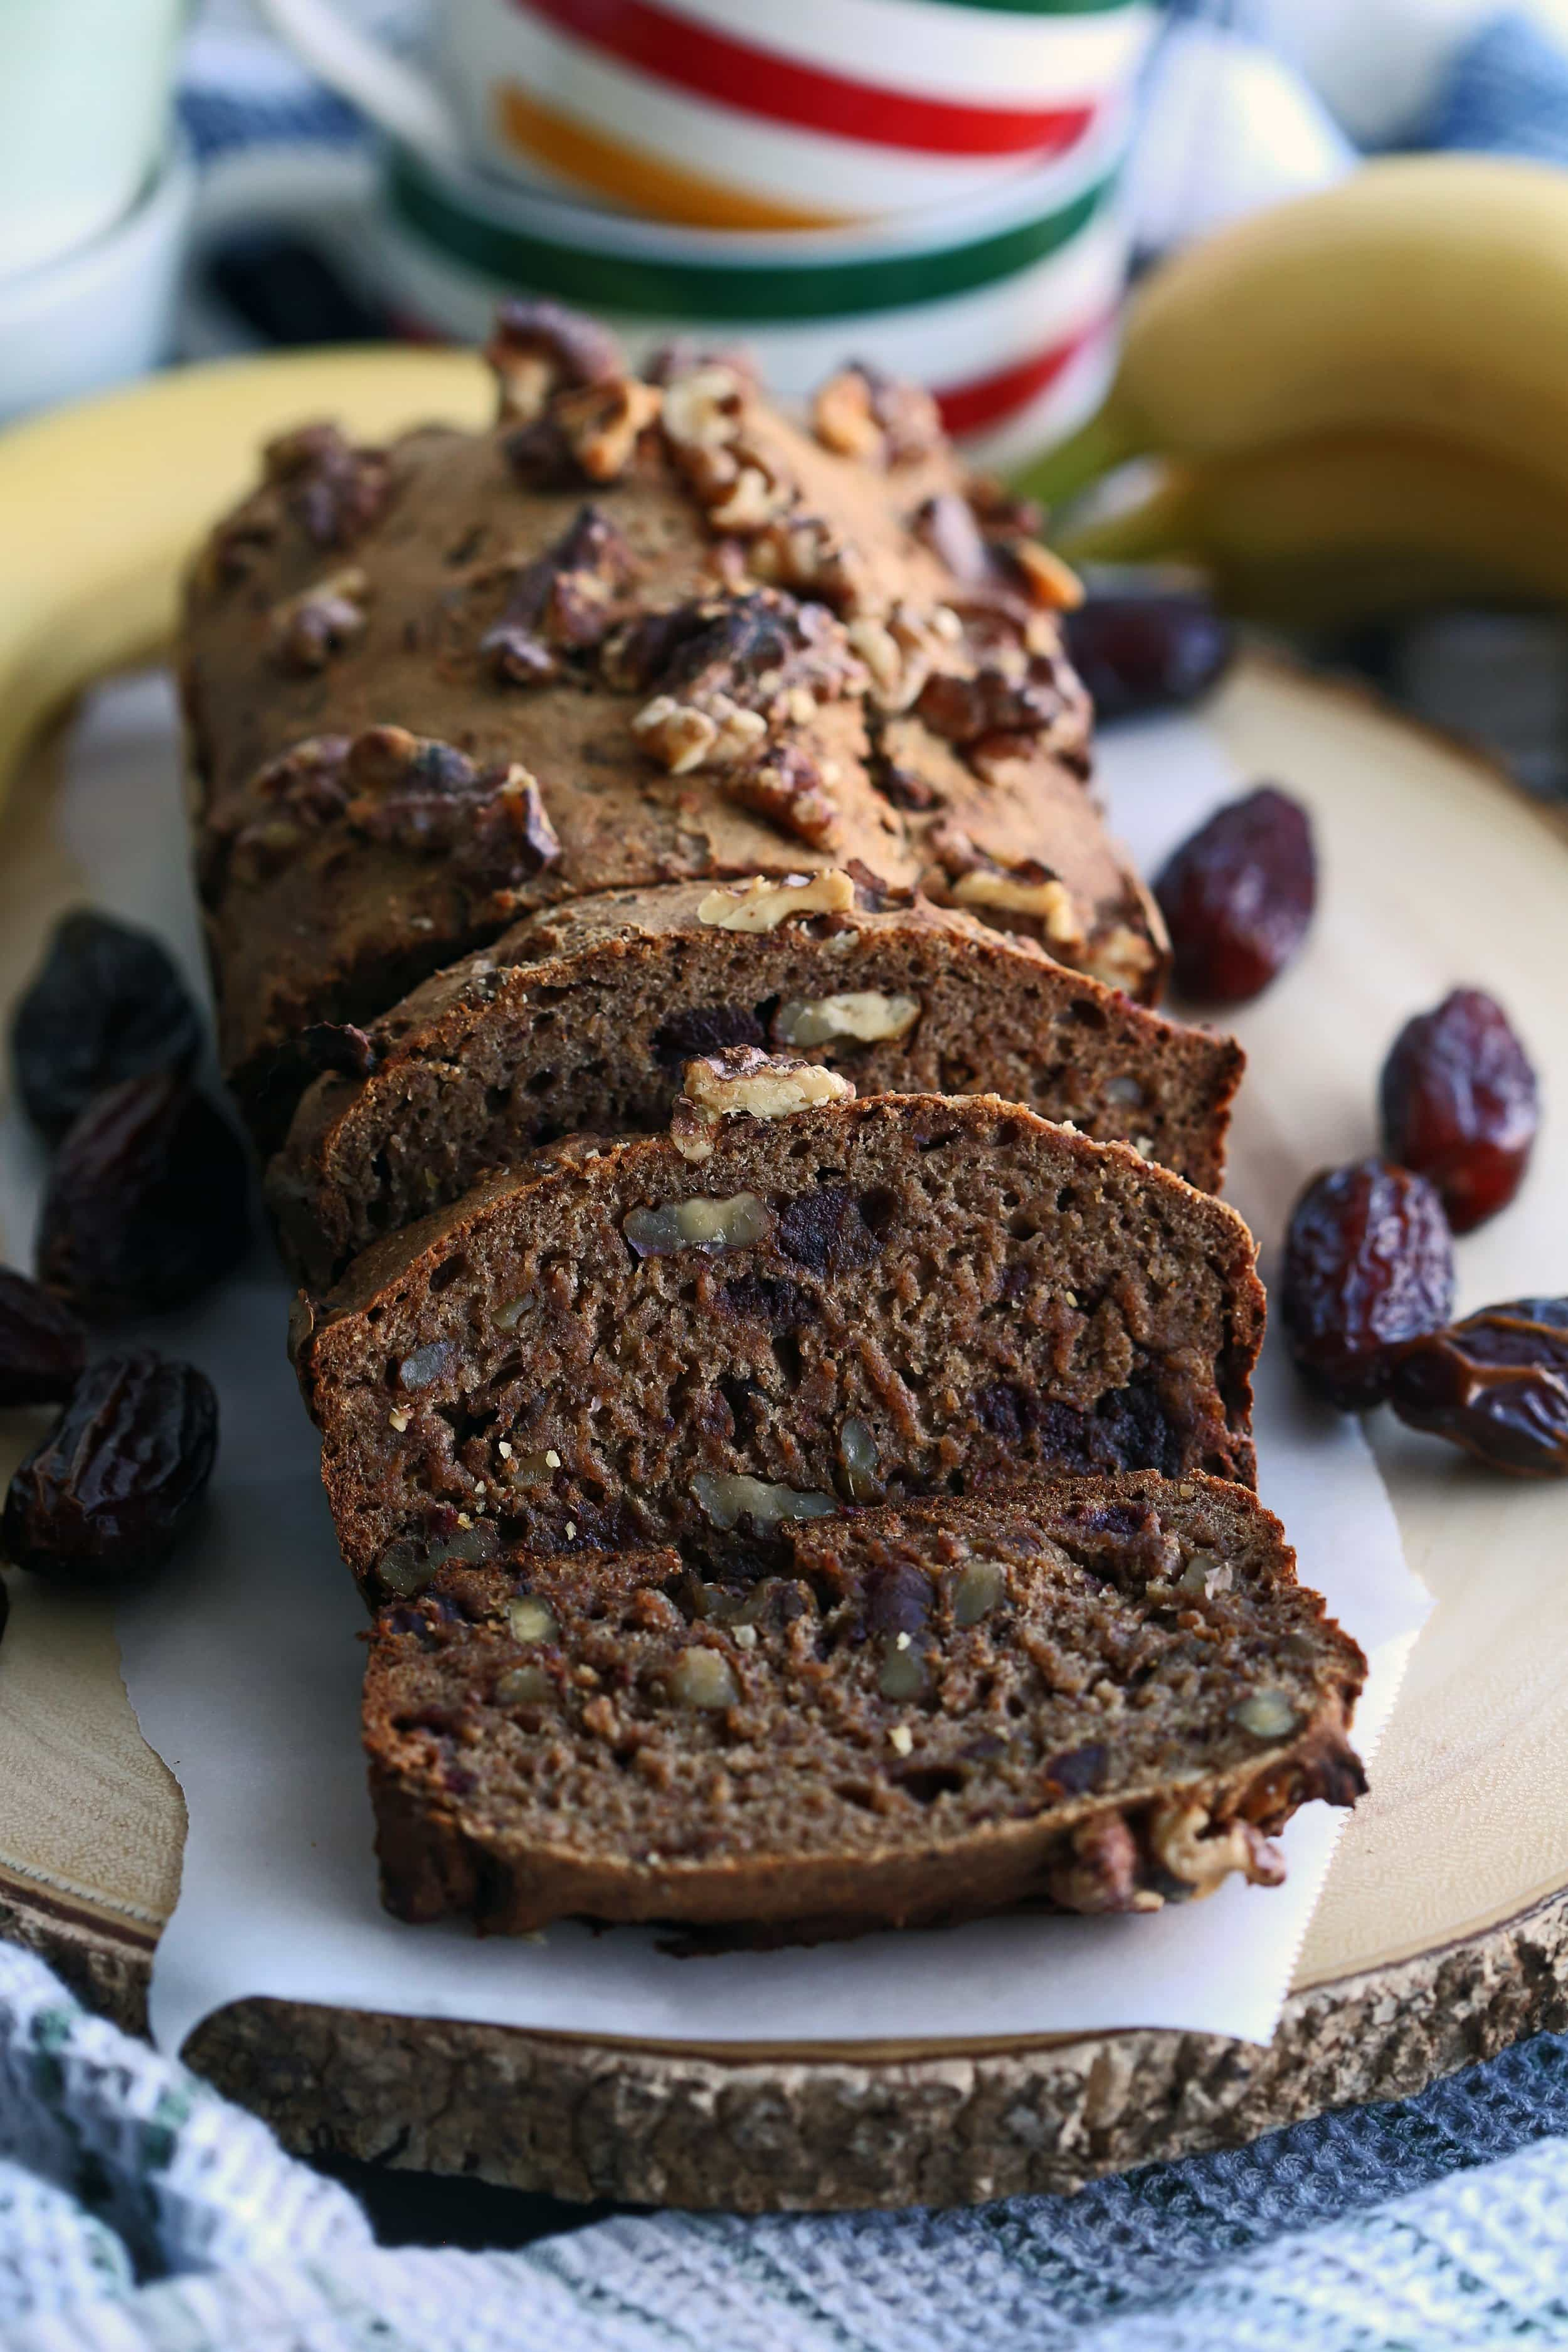 A loaf of banana bread with Medjool dates and walnuts surrounded by fresh bananas and dates on a wooden platter.